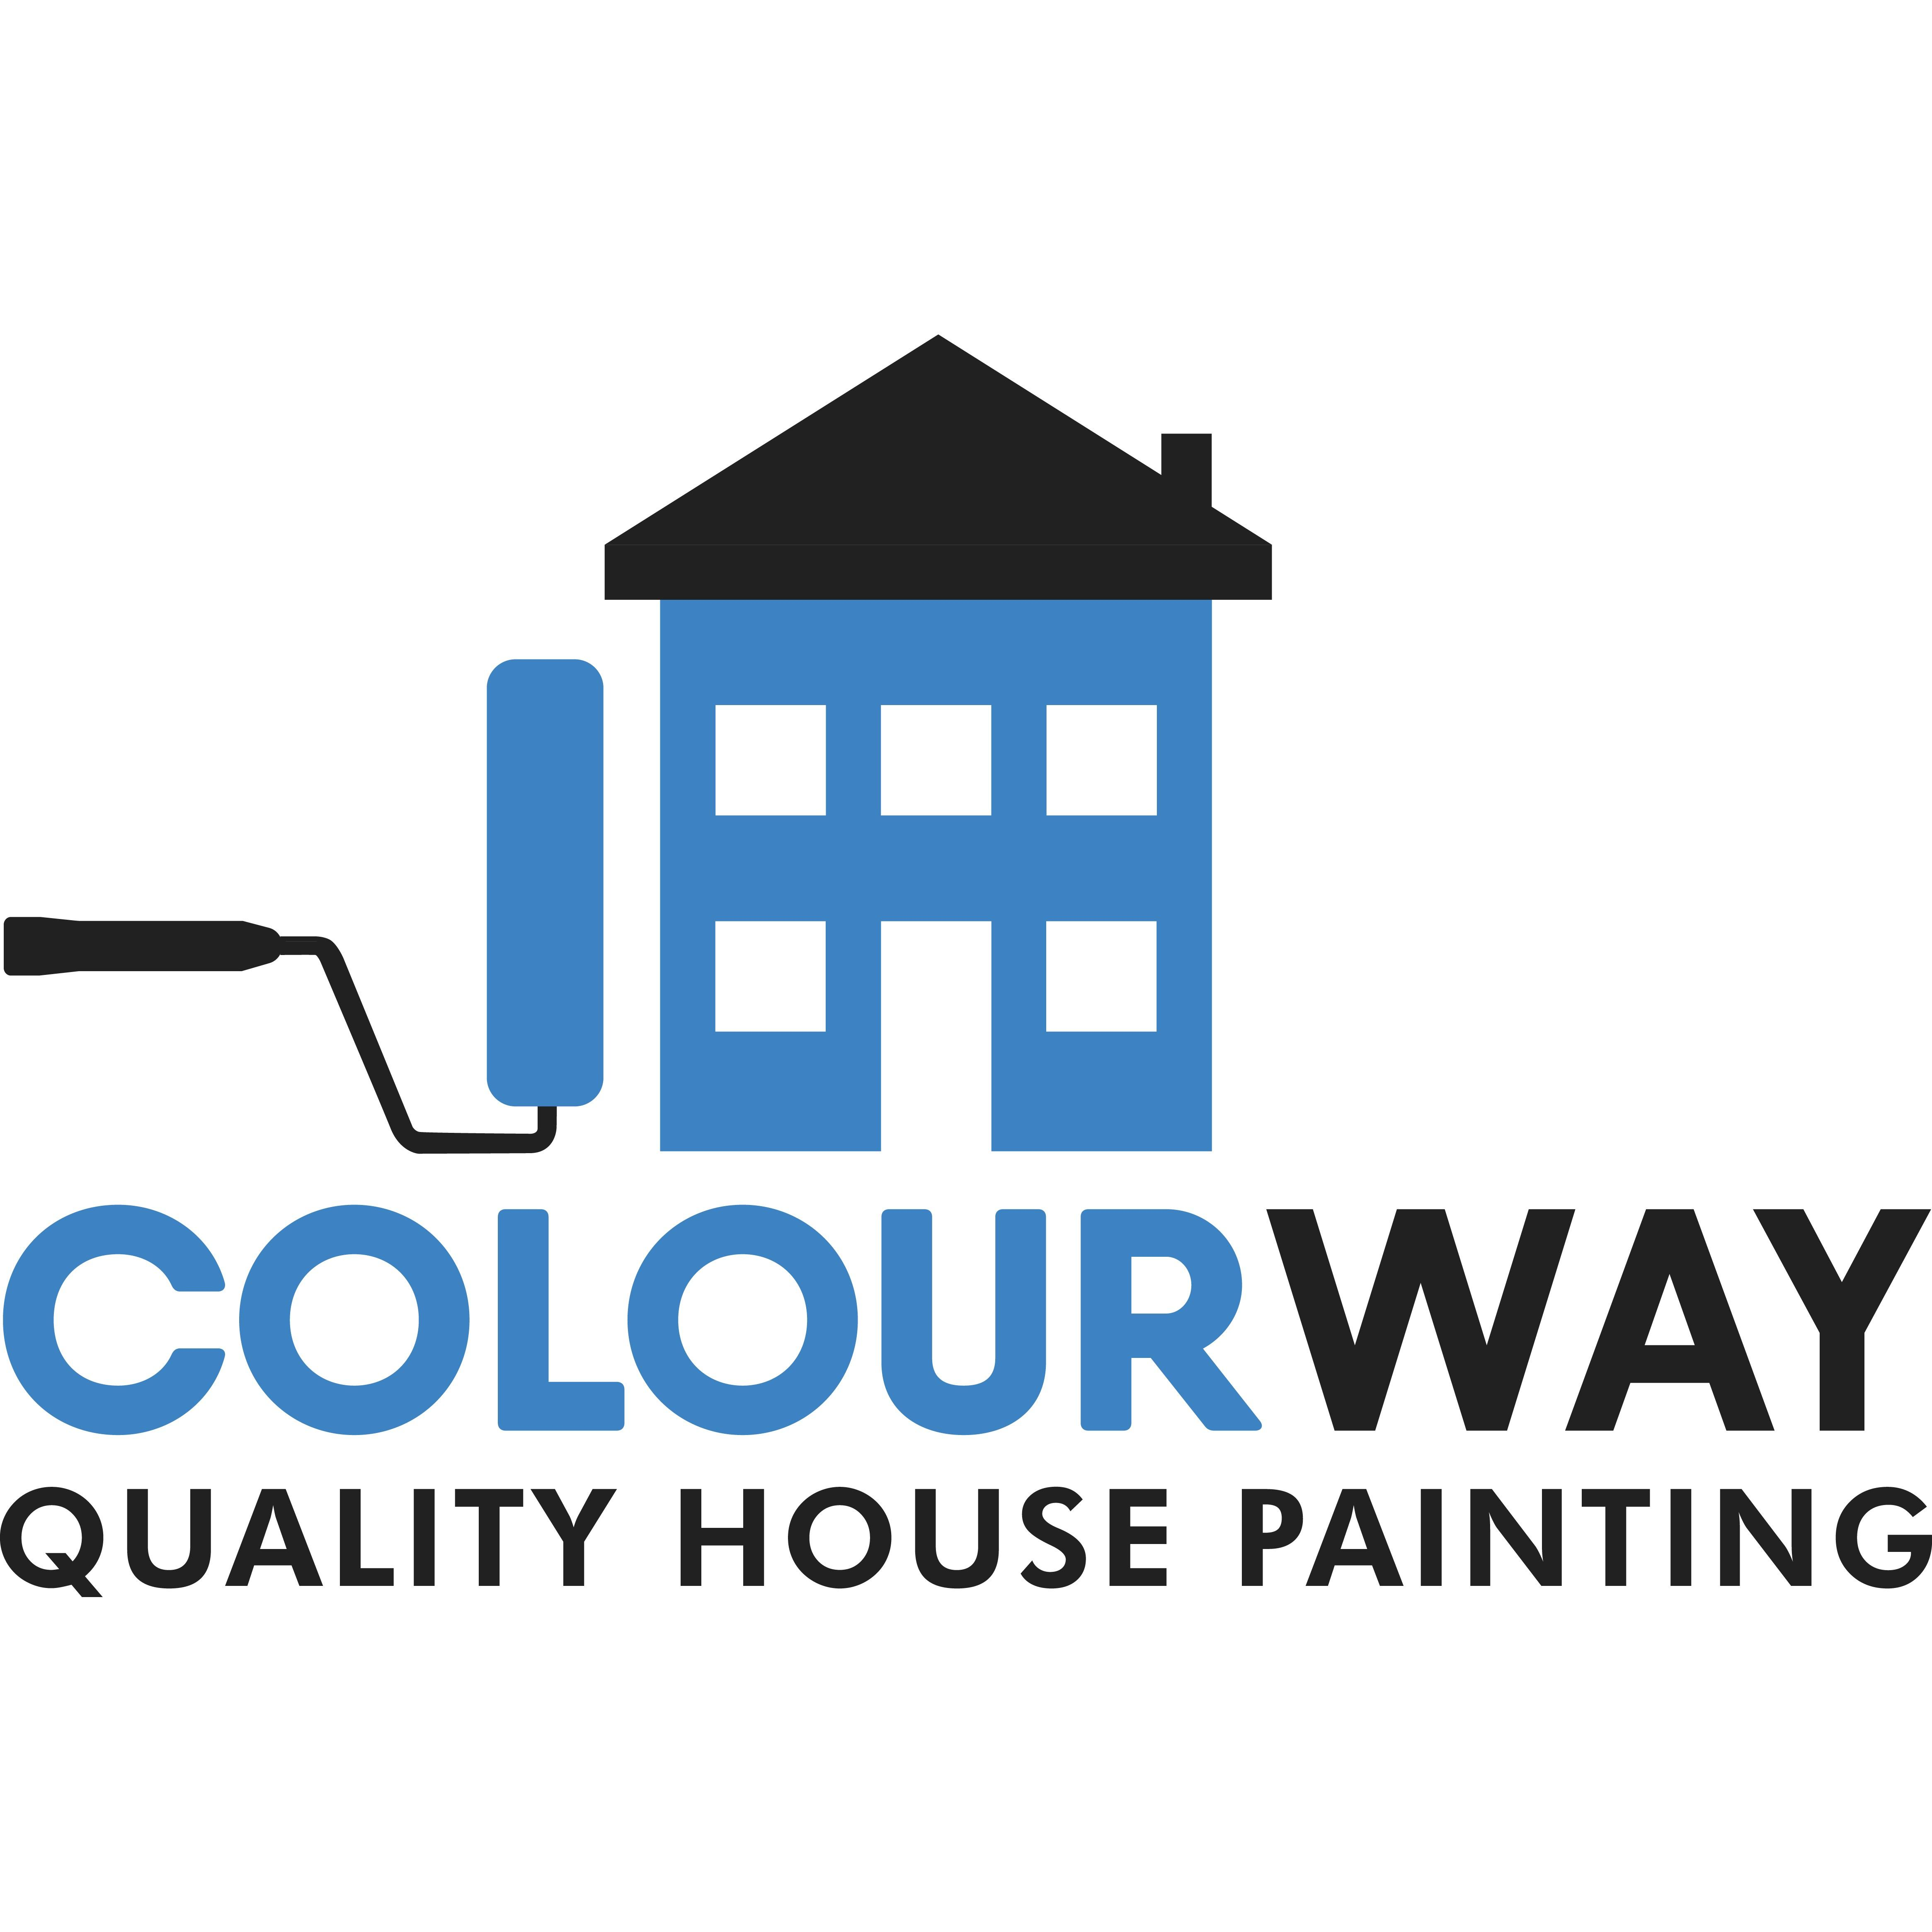 House painting pictures and logos